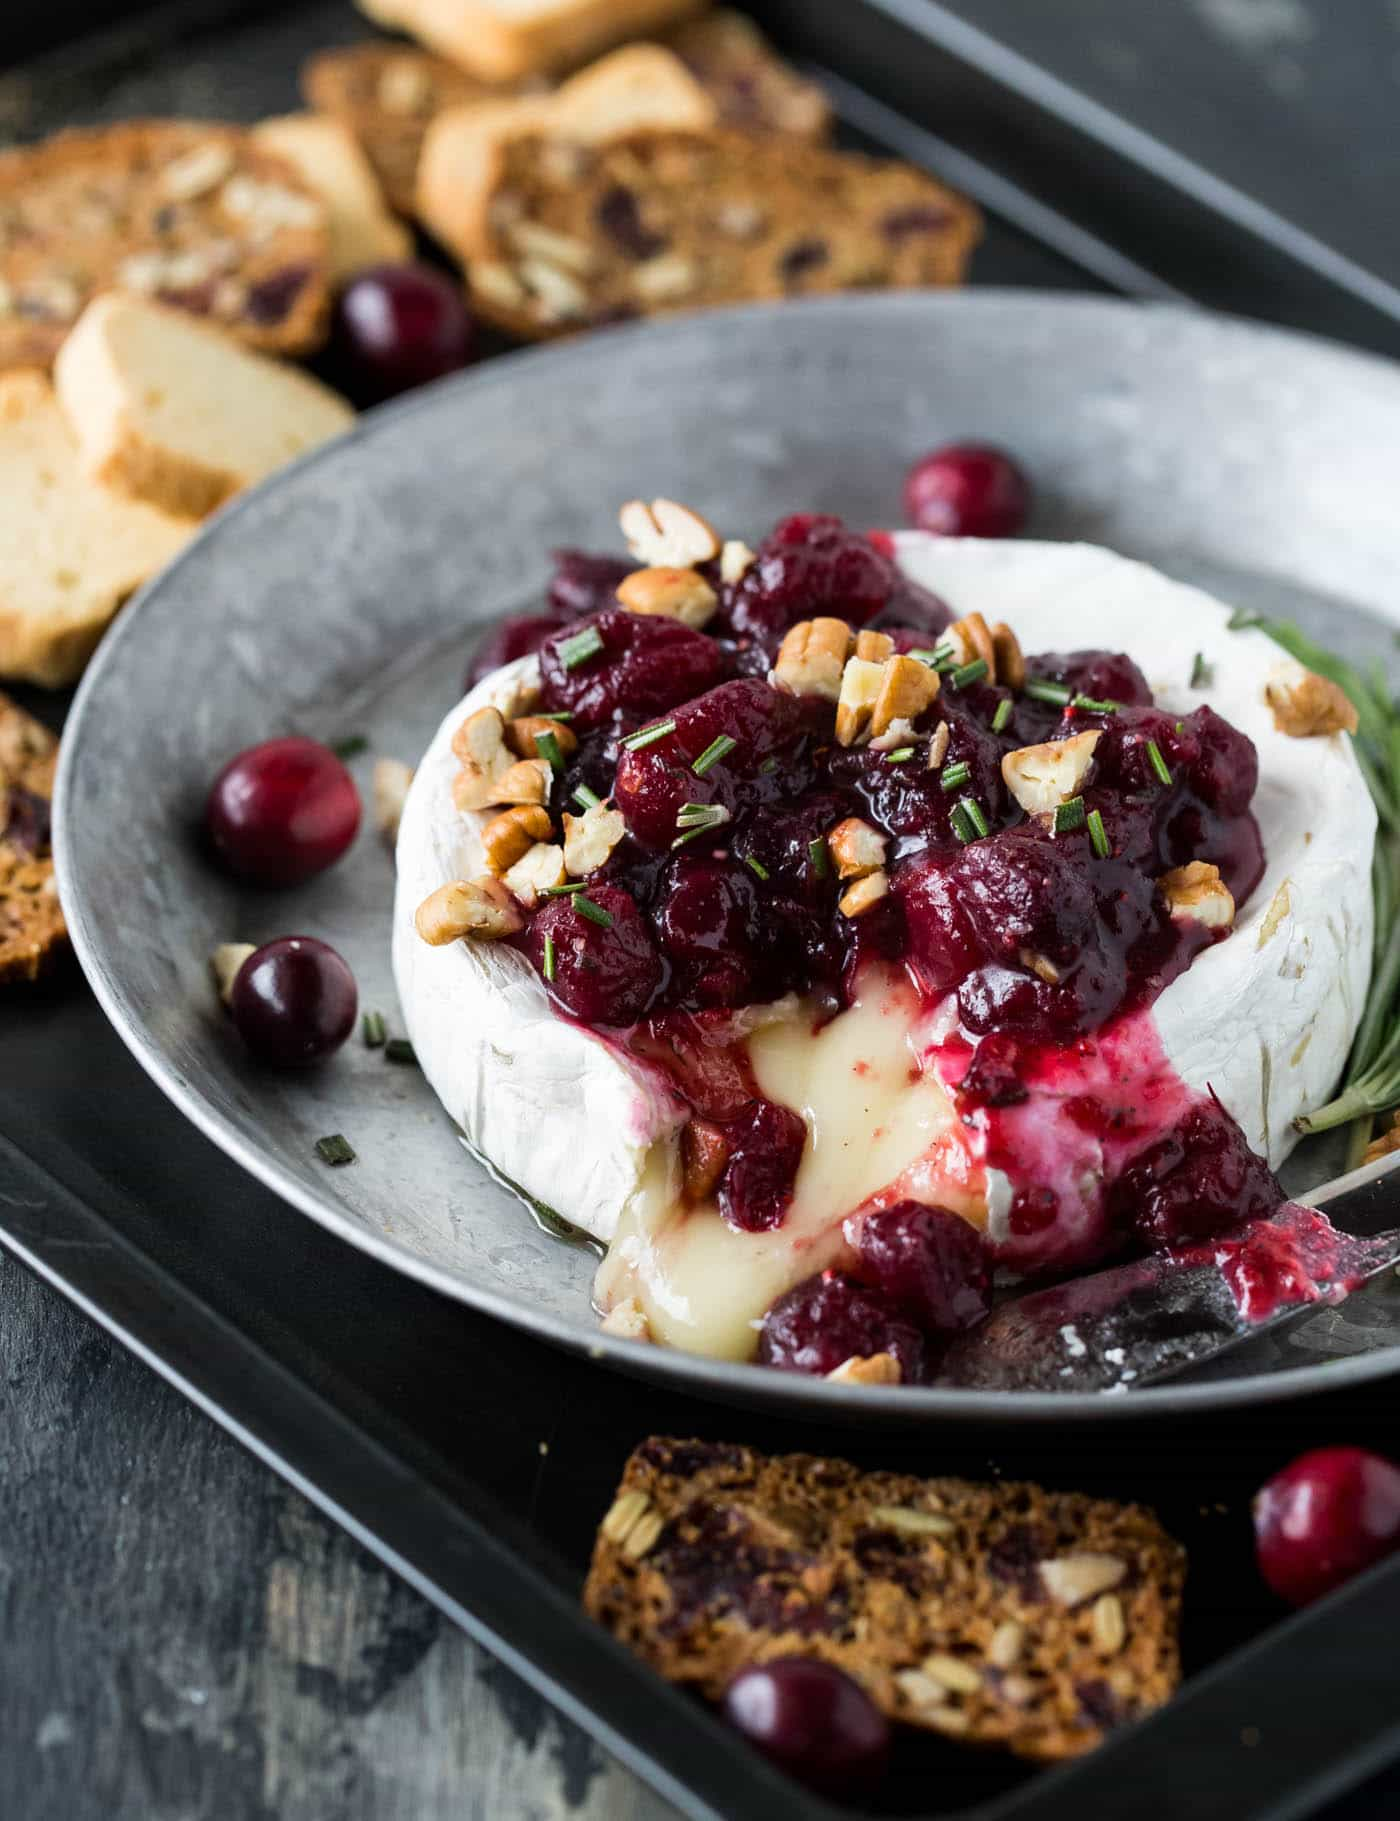 Warm brie topped with cranberries and pecans surrounded by crackers and mini toasts.